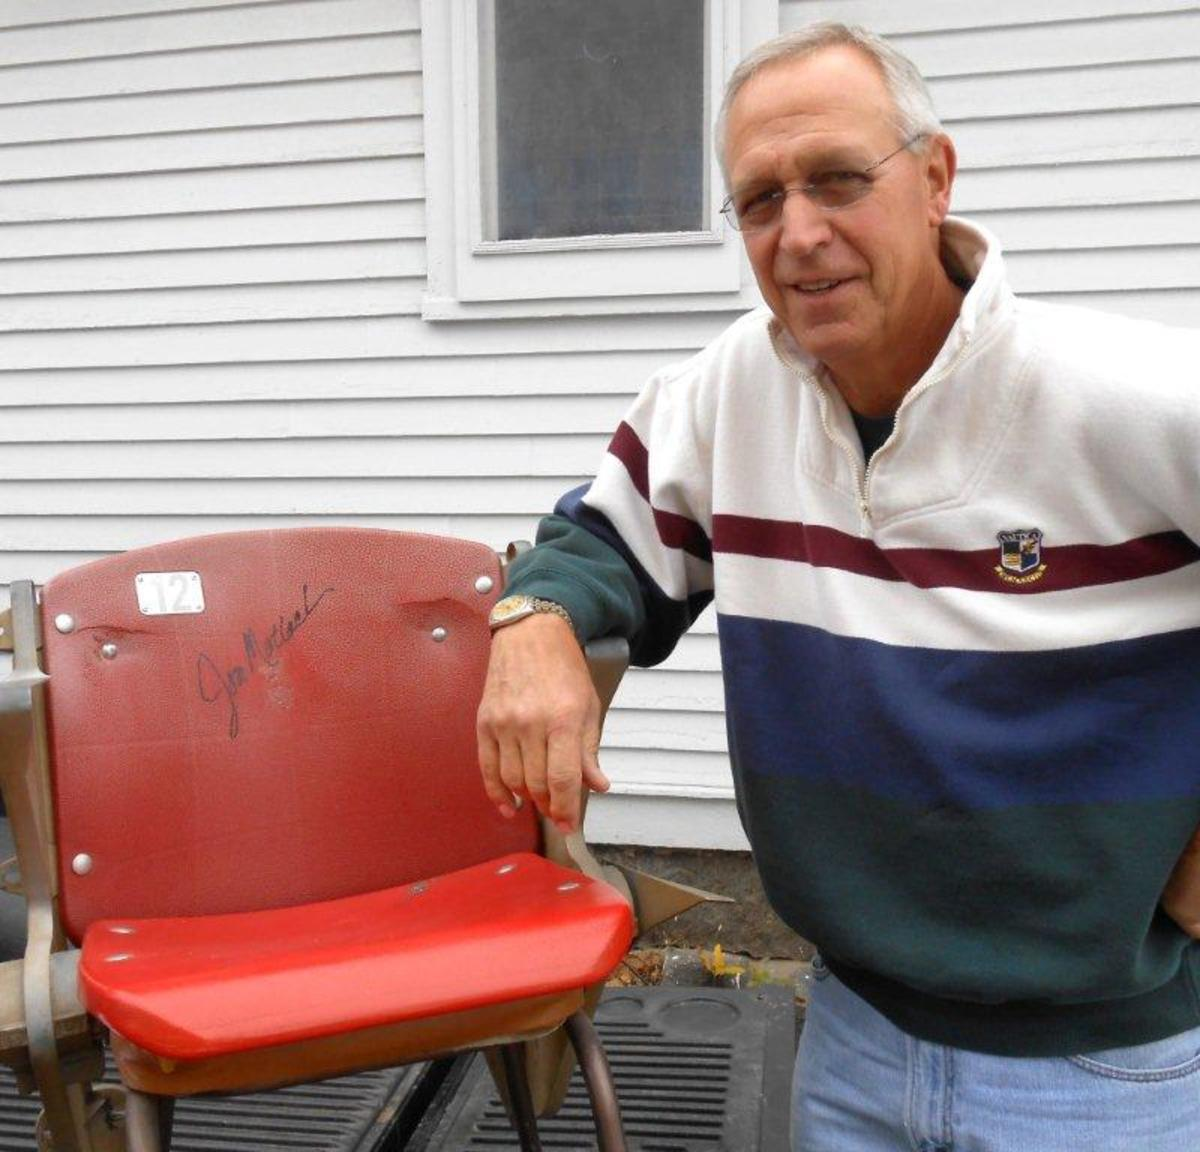 Jon Matlack pitched with the Texas Rangers from 1978-83. Here is a seat that he's autographed, taken from the Rangers' old ballpark, Arlington Stadium.